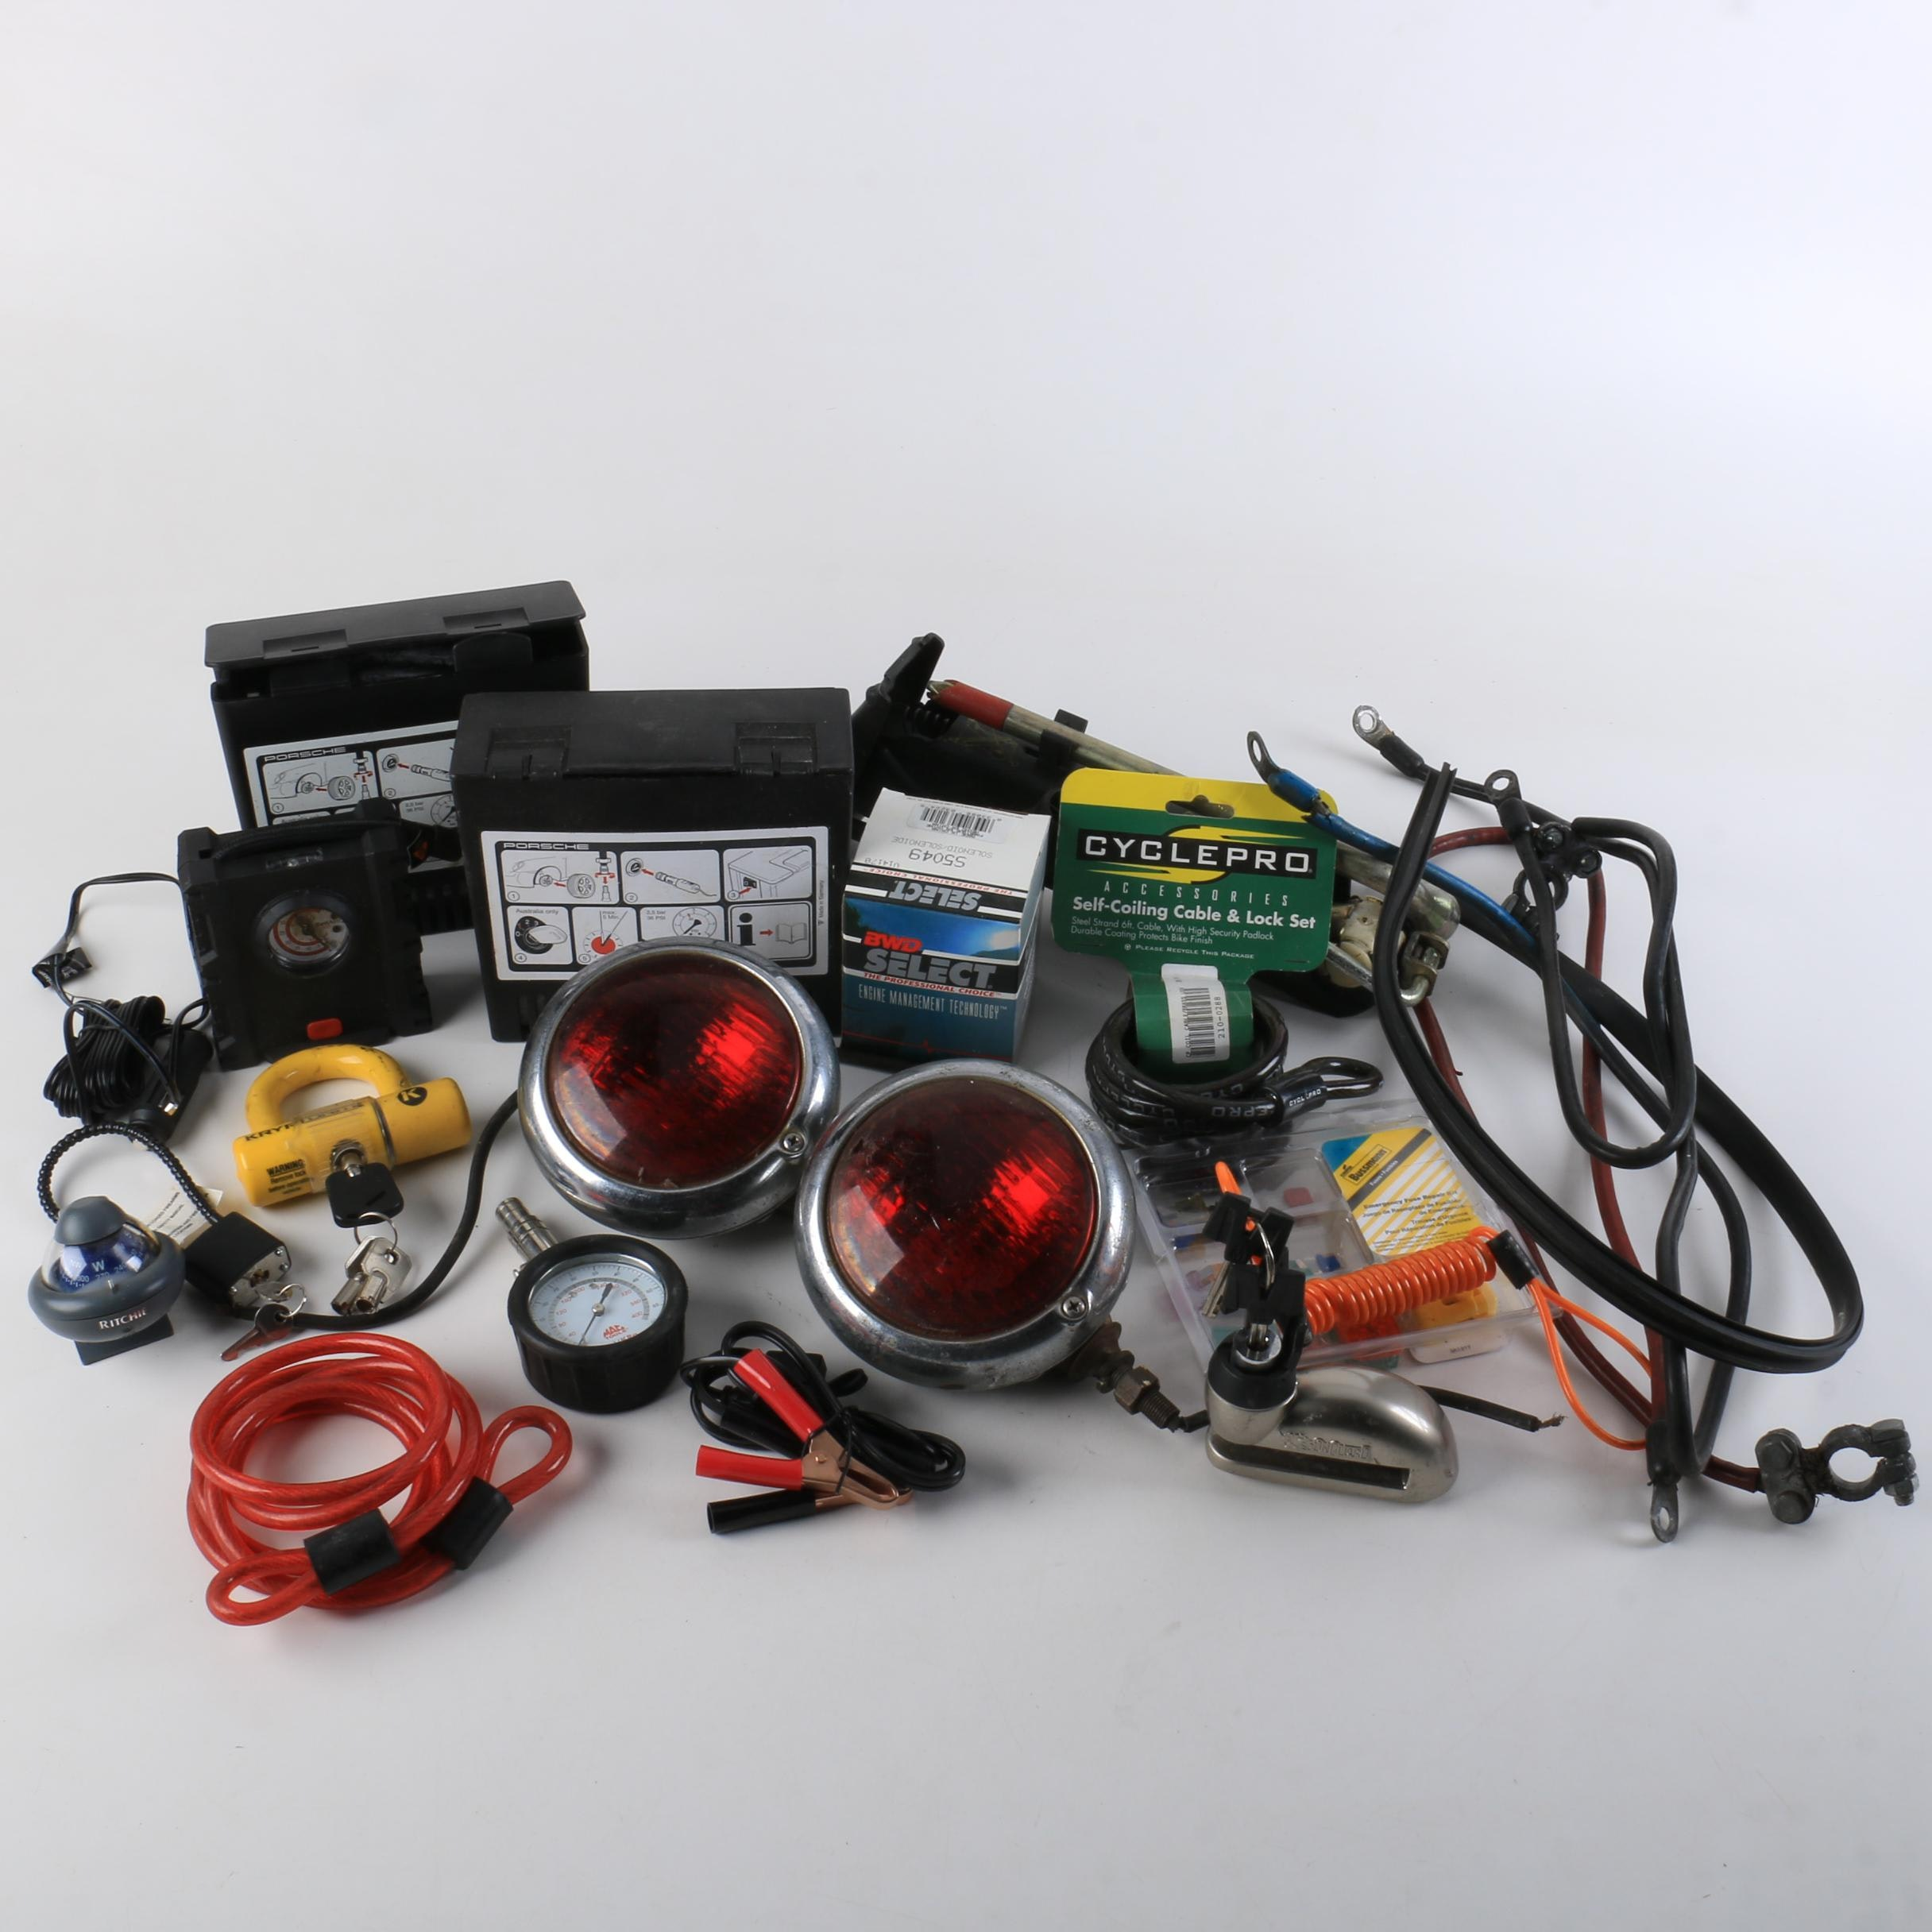 Assorted Car Parts and Equipment